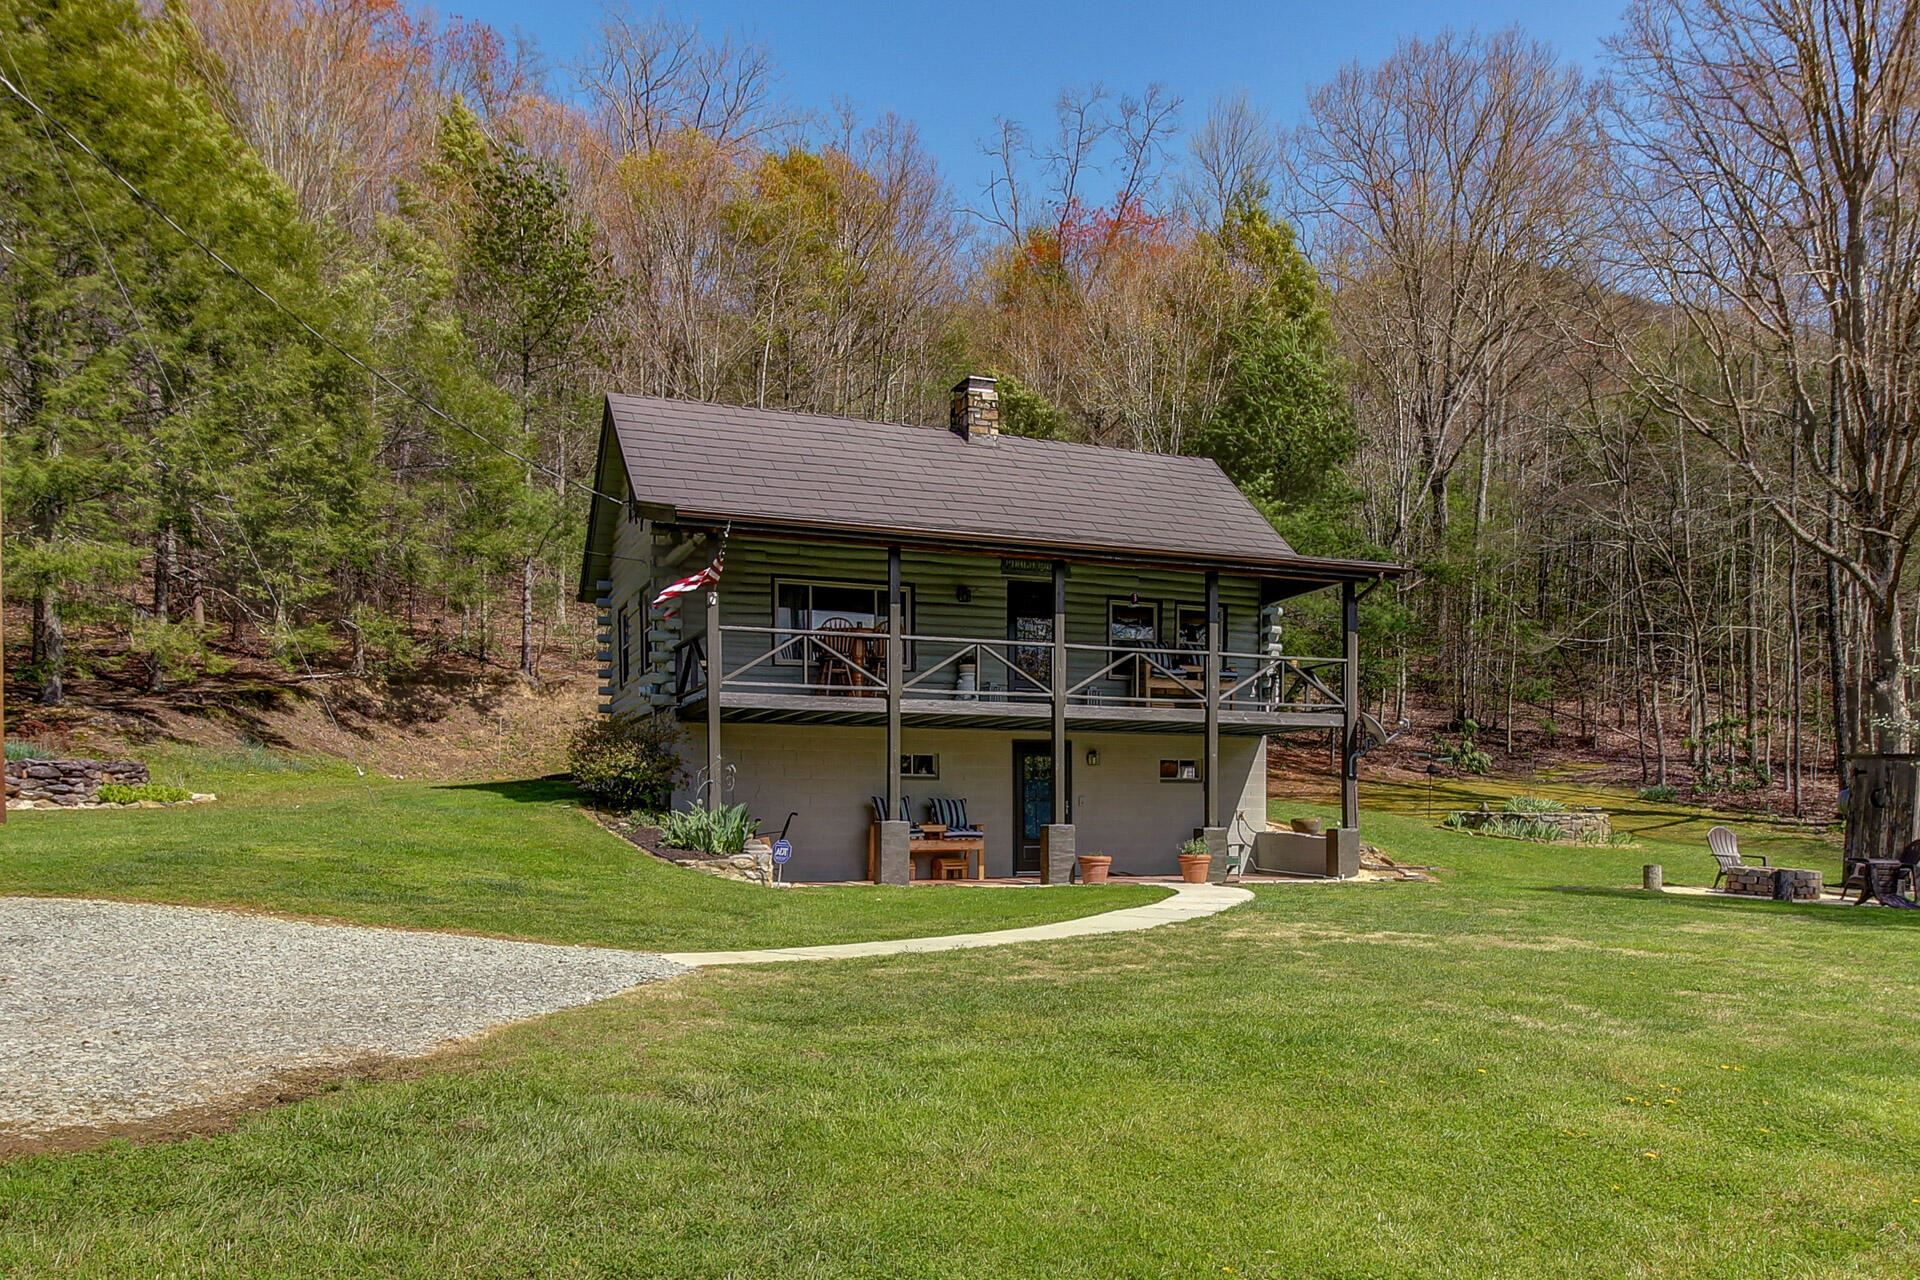 Photo of 2703 Clabo Rd, Sevierville, TN 37862 (MLS # 1149108)